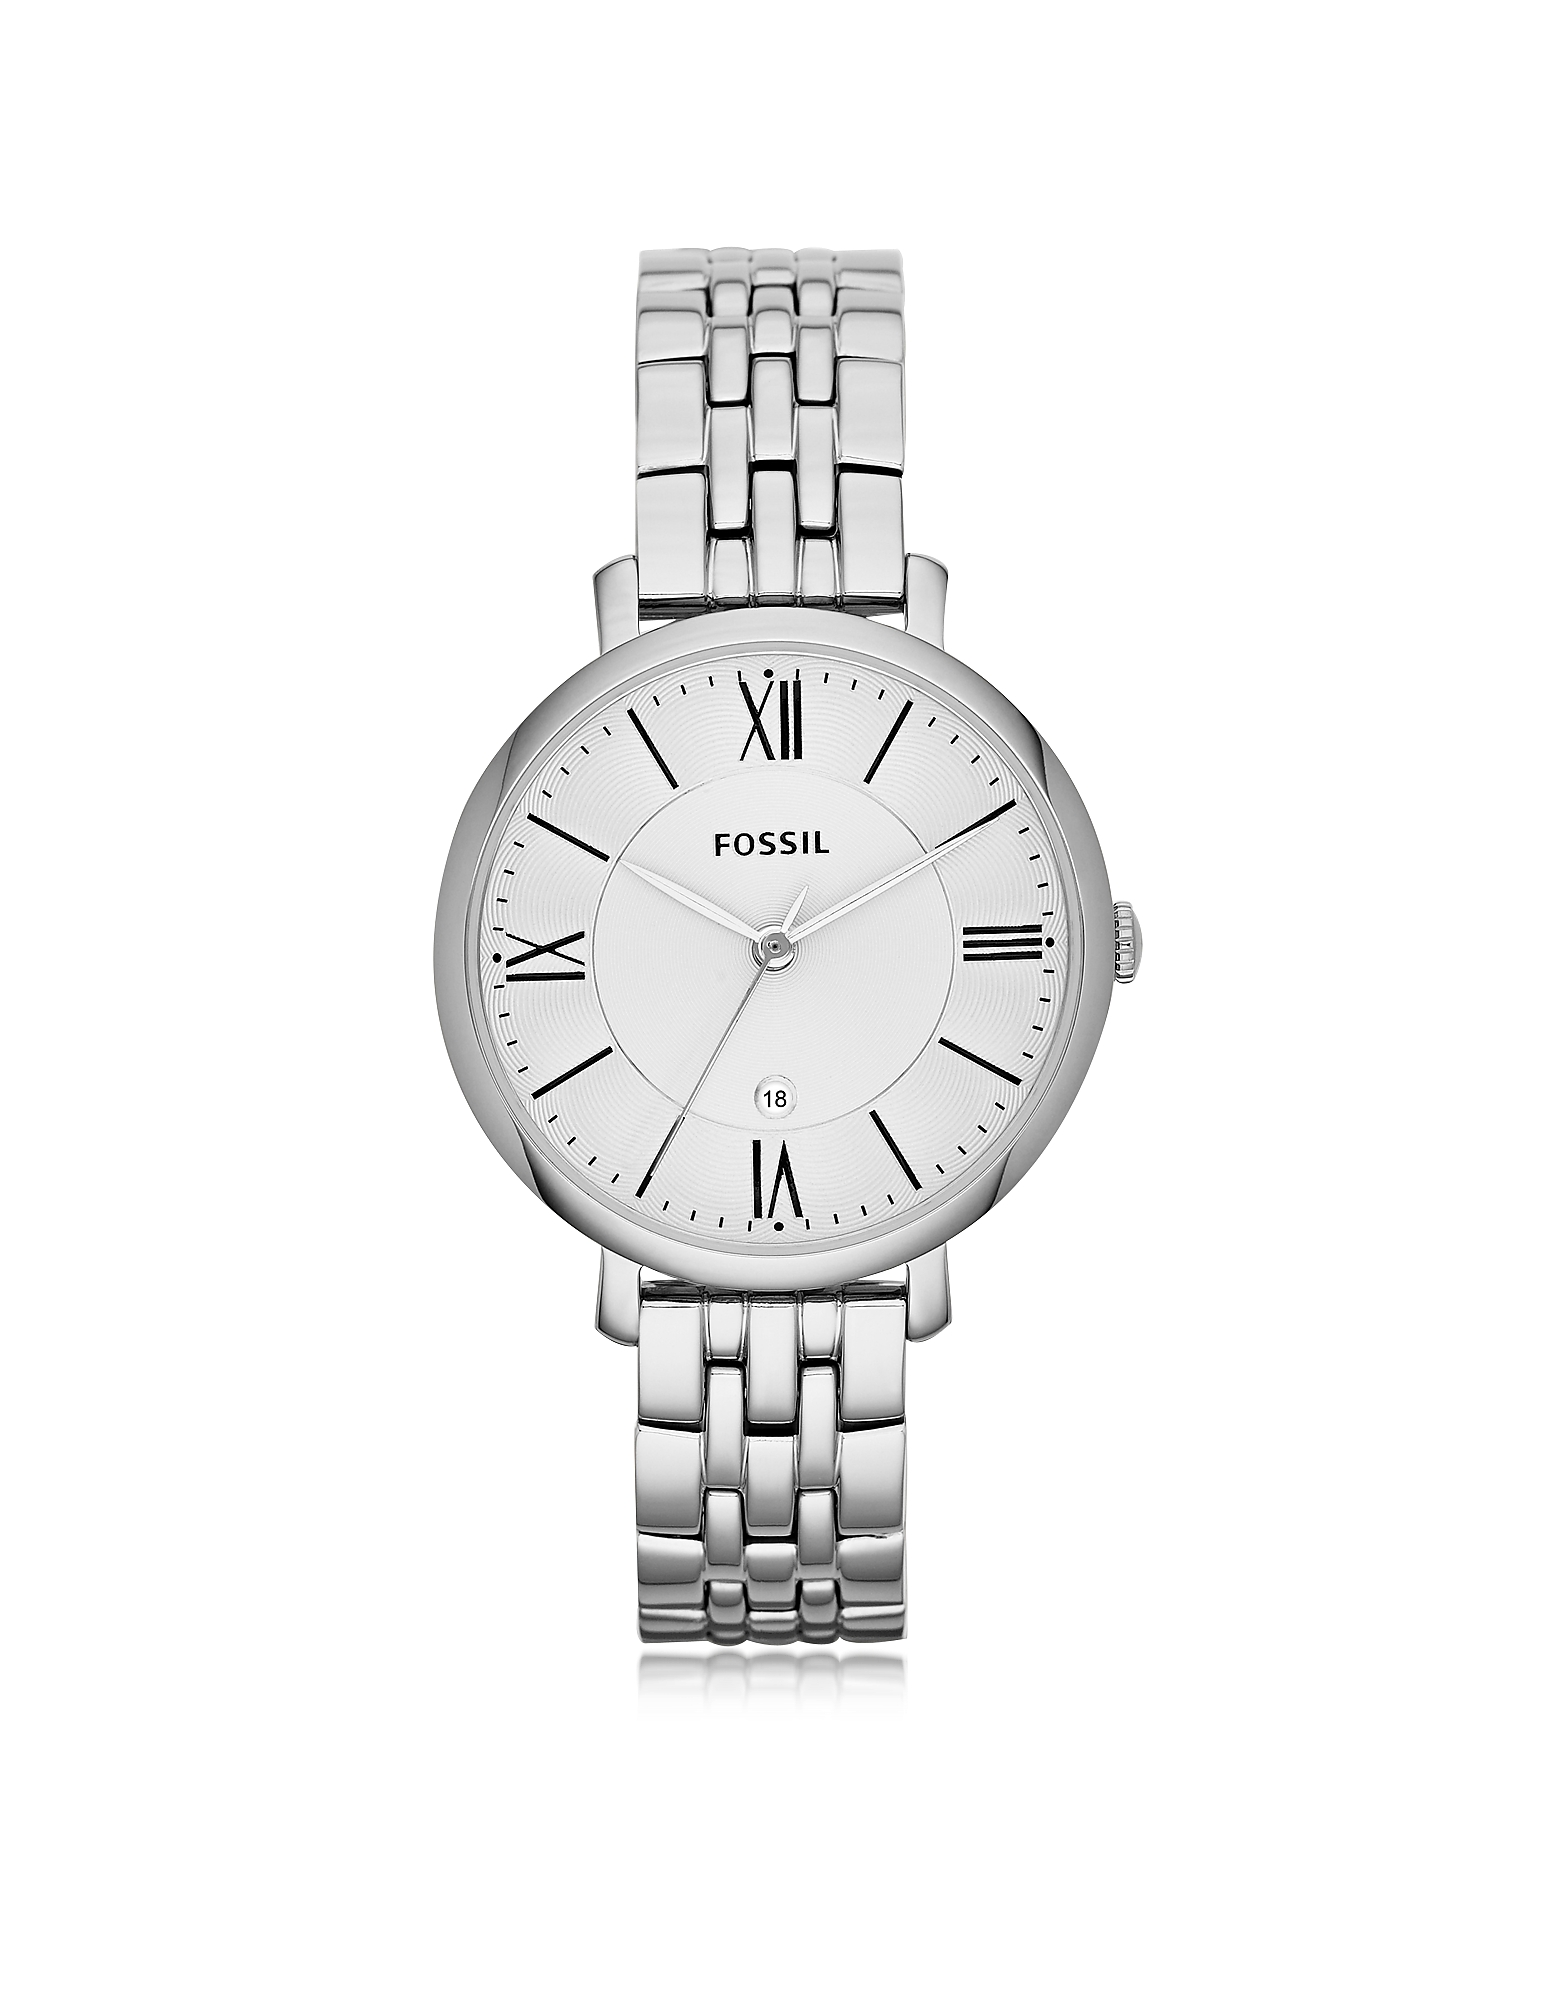 Fossil Women's Watches, Jacqueline Stainless Steel Women's Watch